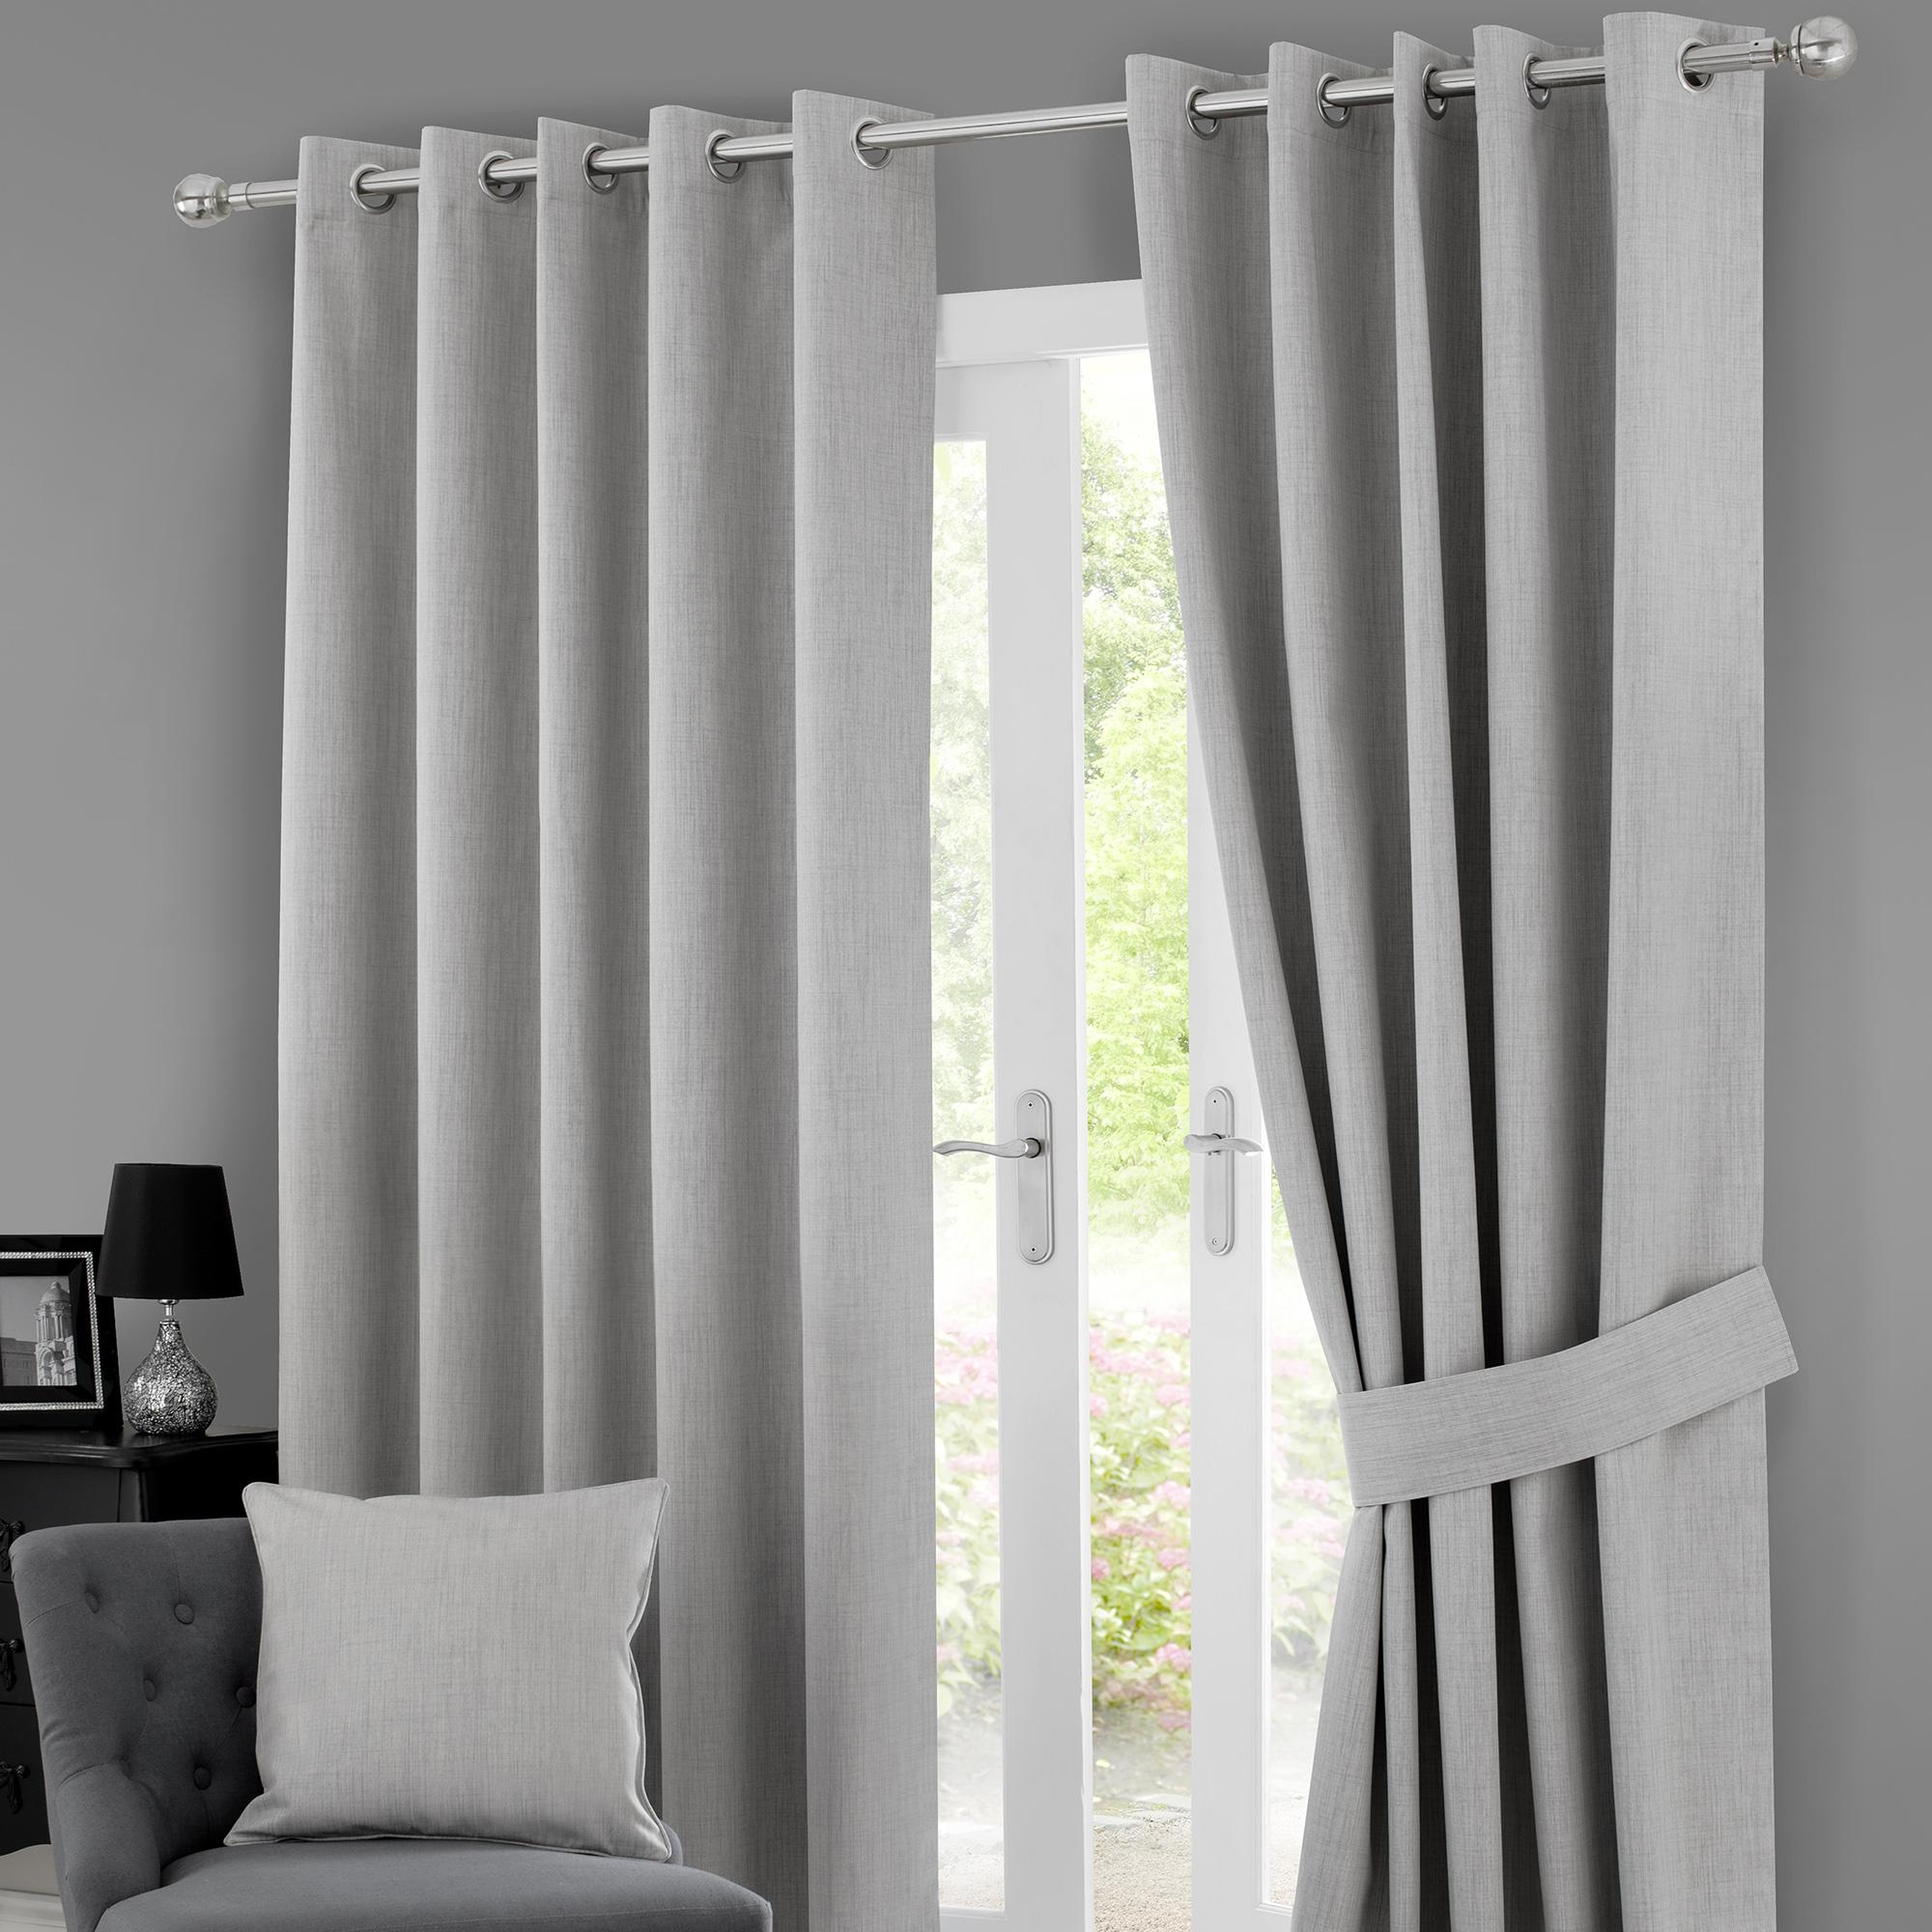 Advantages Of Having Eyelet Curtains Goodworksfurniture